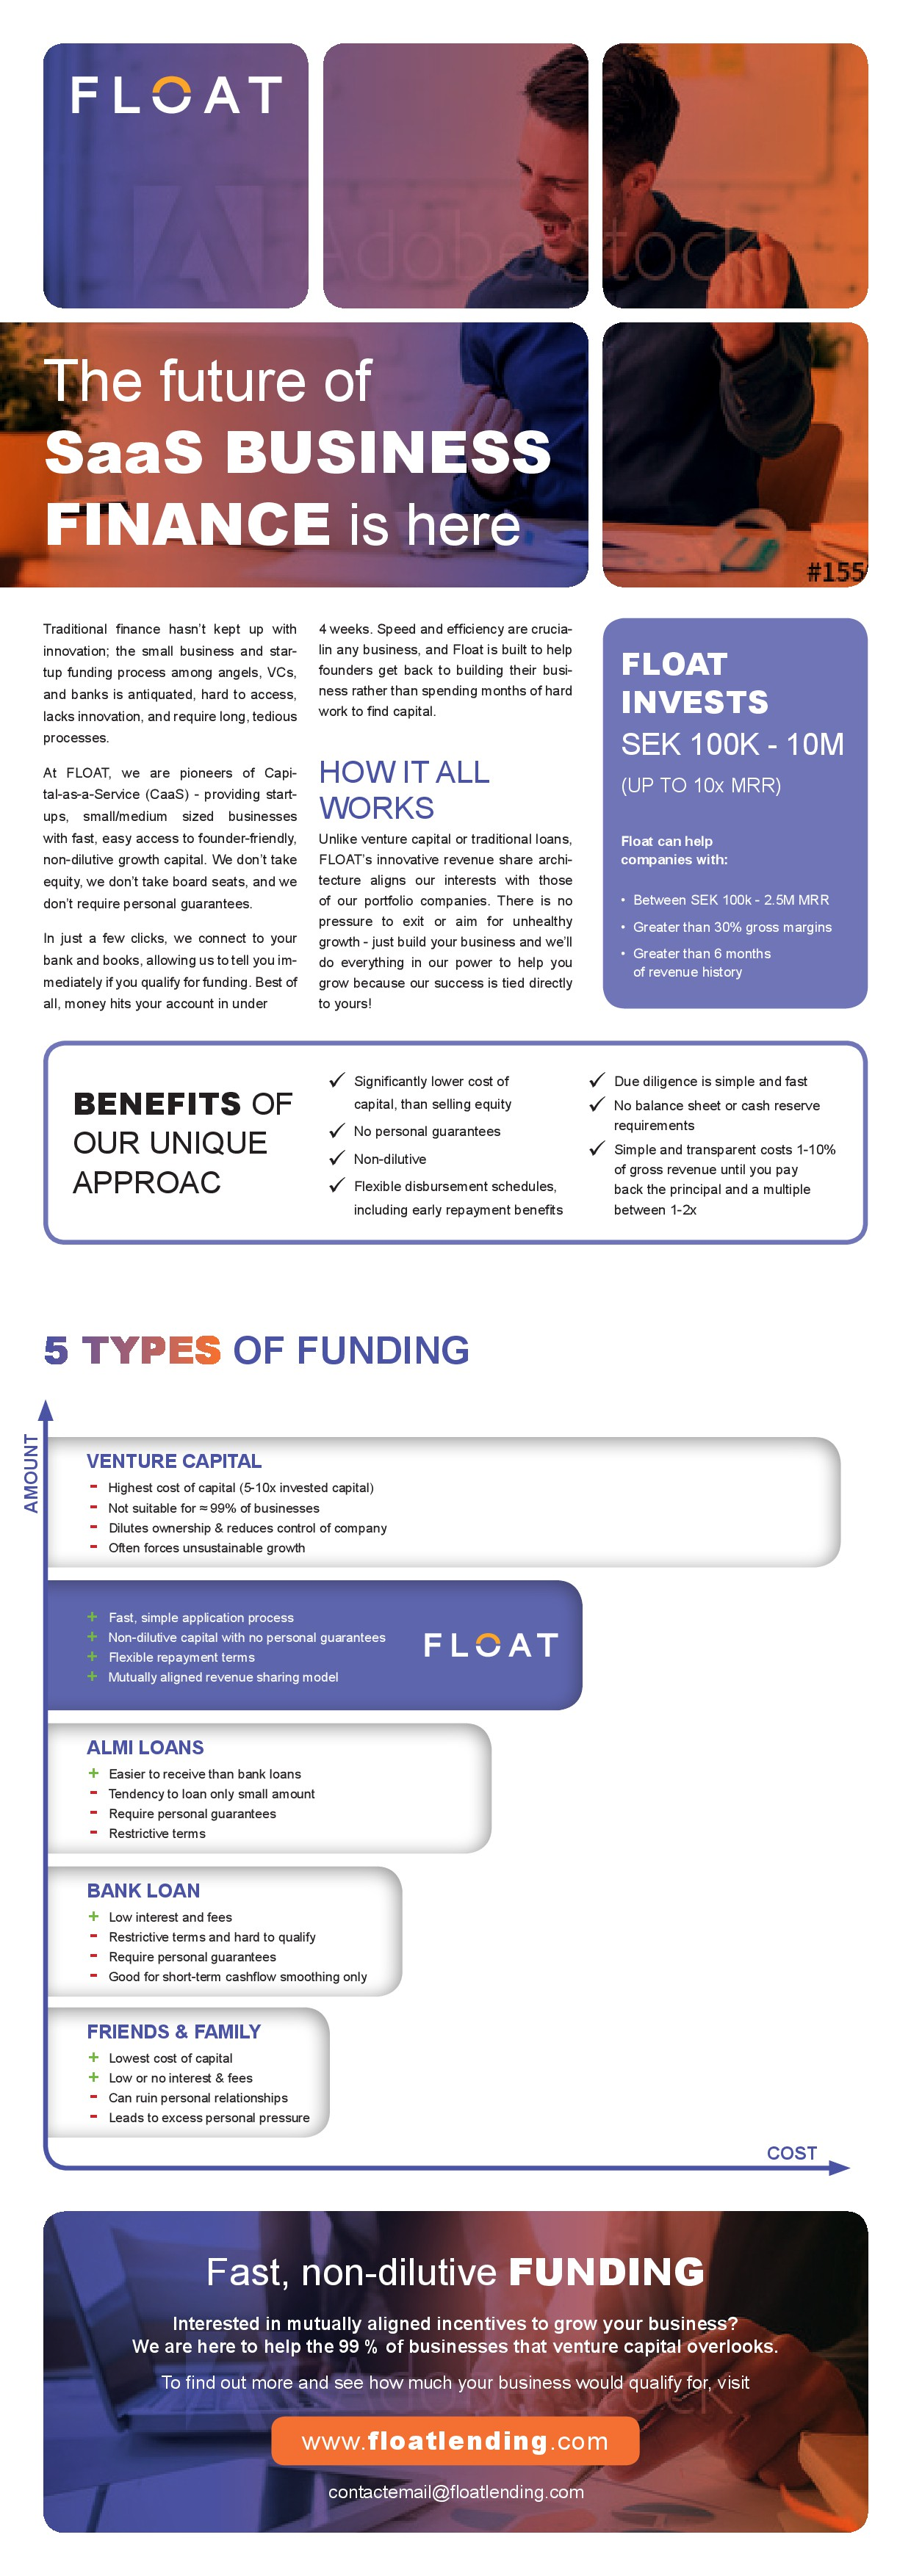 Have fun and be creative by designing a modern 2-page description of Float